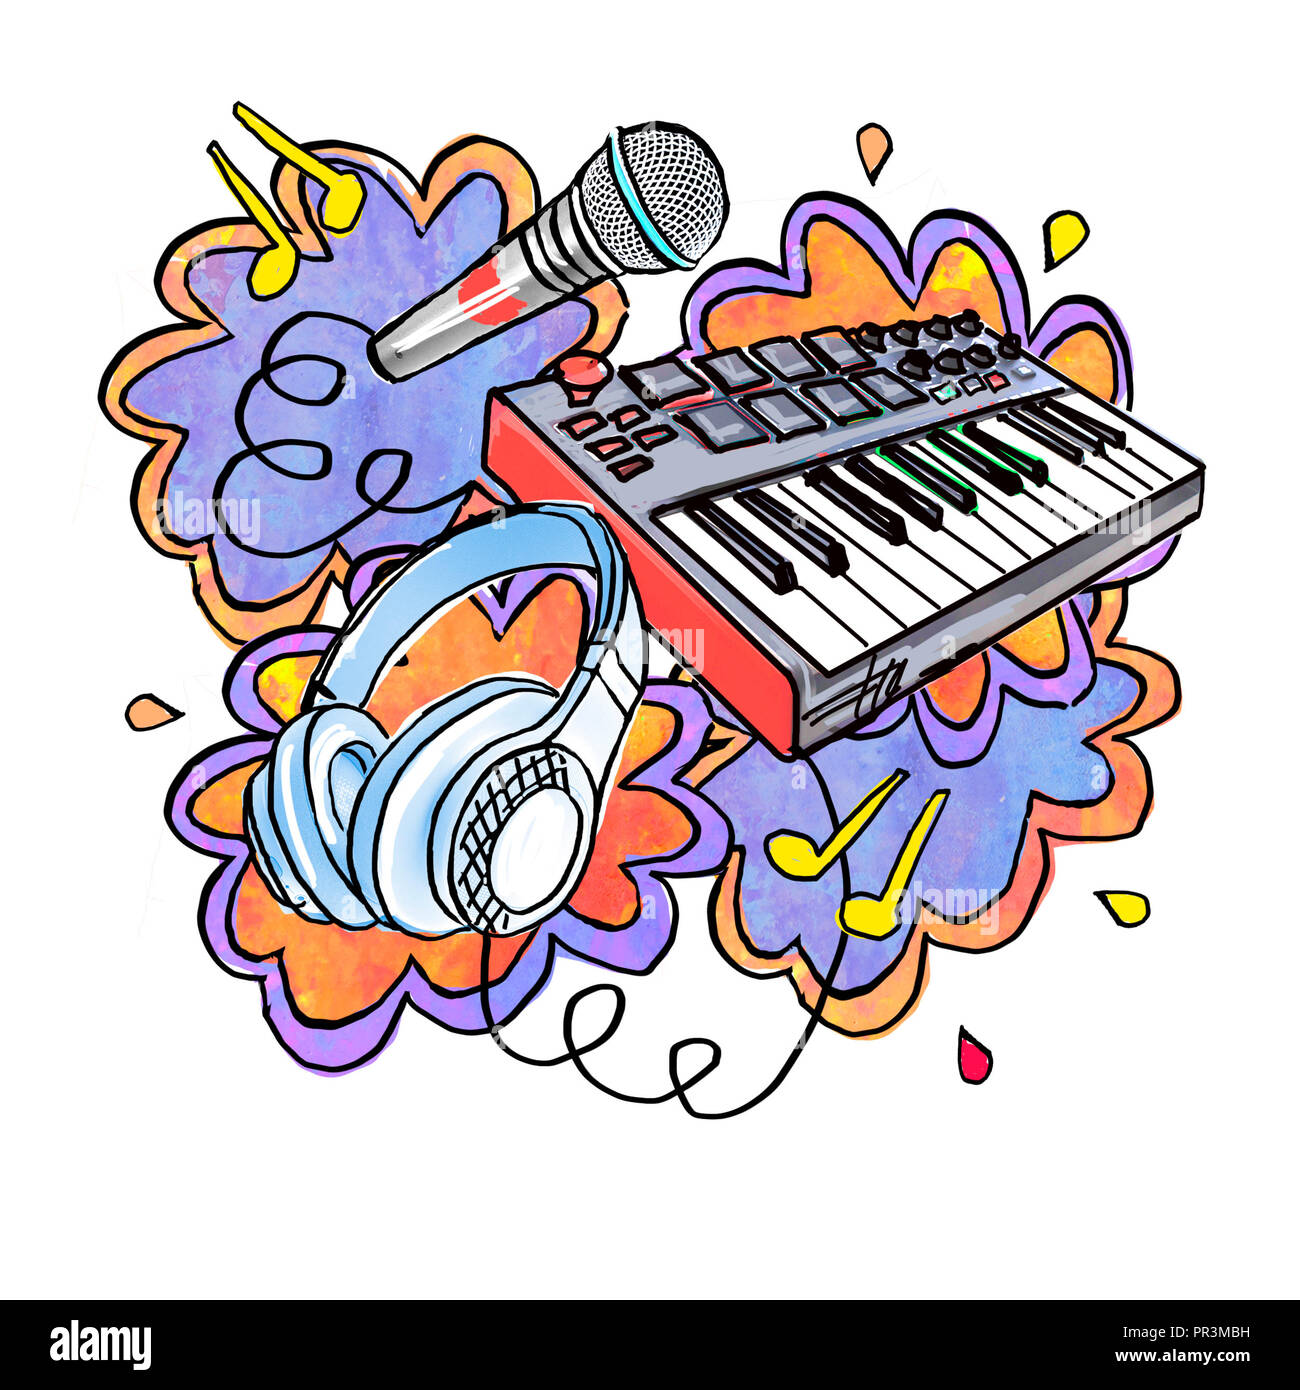 Collage in cartoon style on the theme of music. Isolated composition on a white background. Illustration - sticker, print. - Stock Image